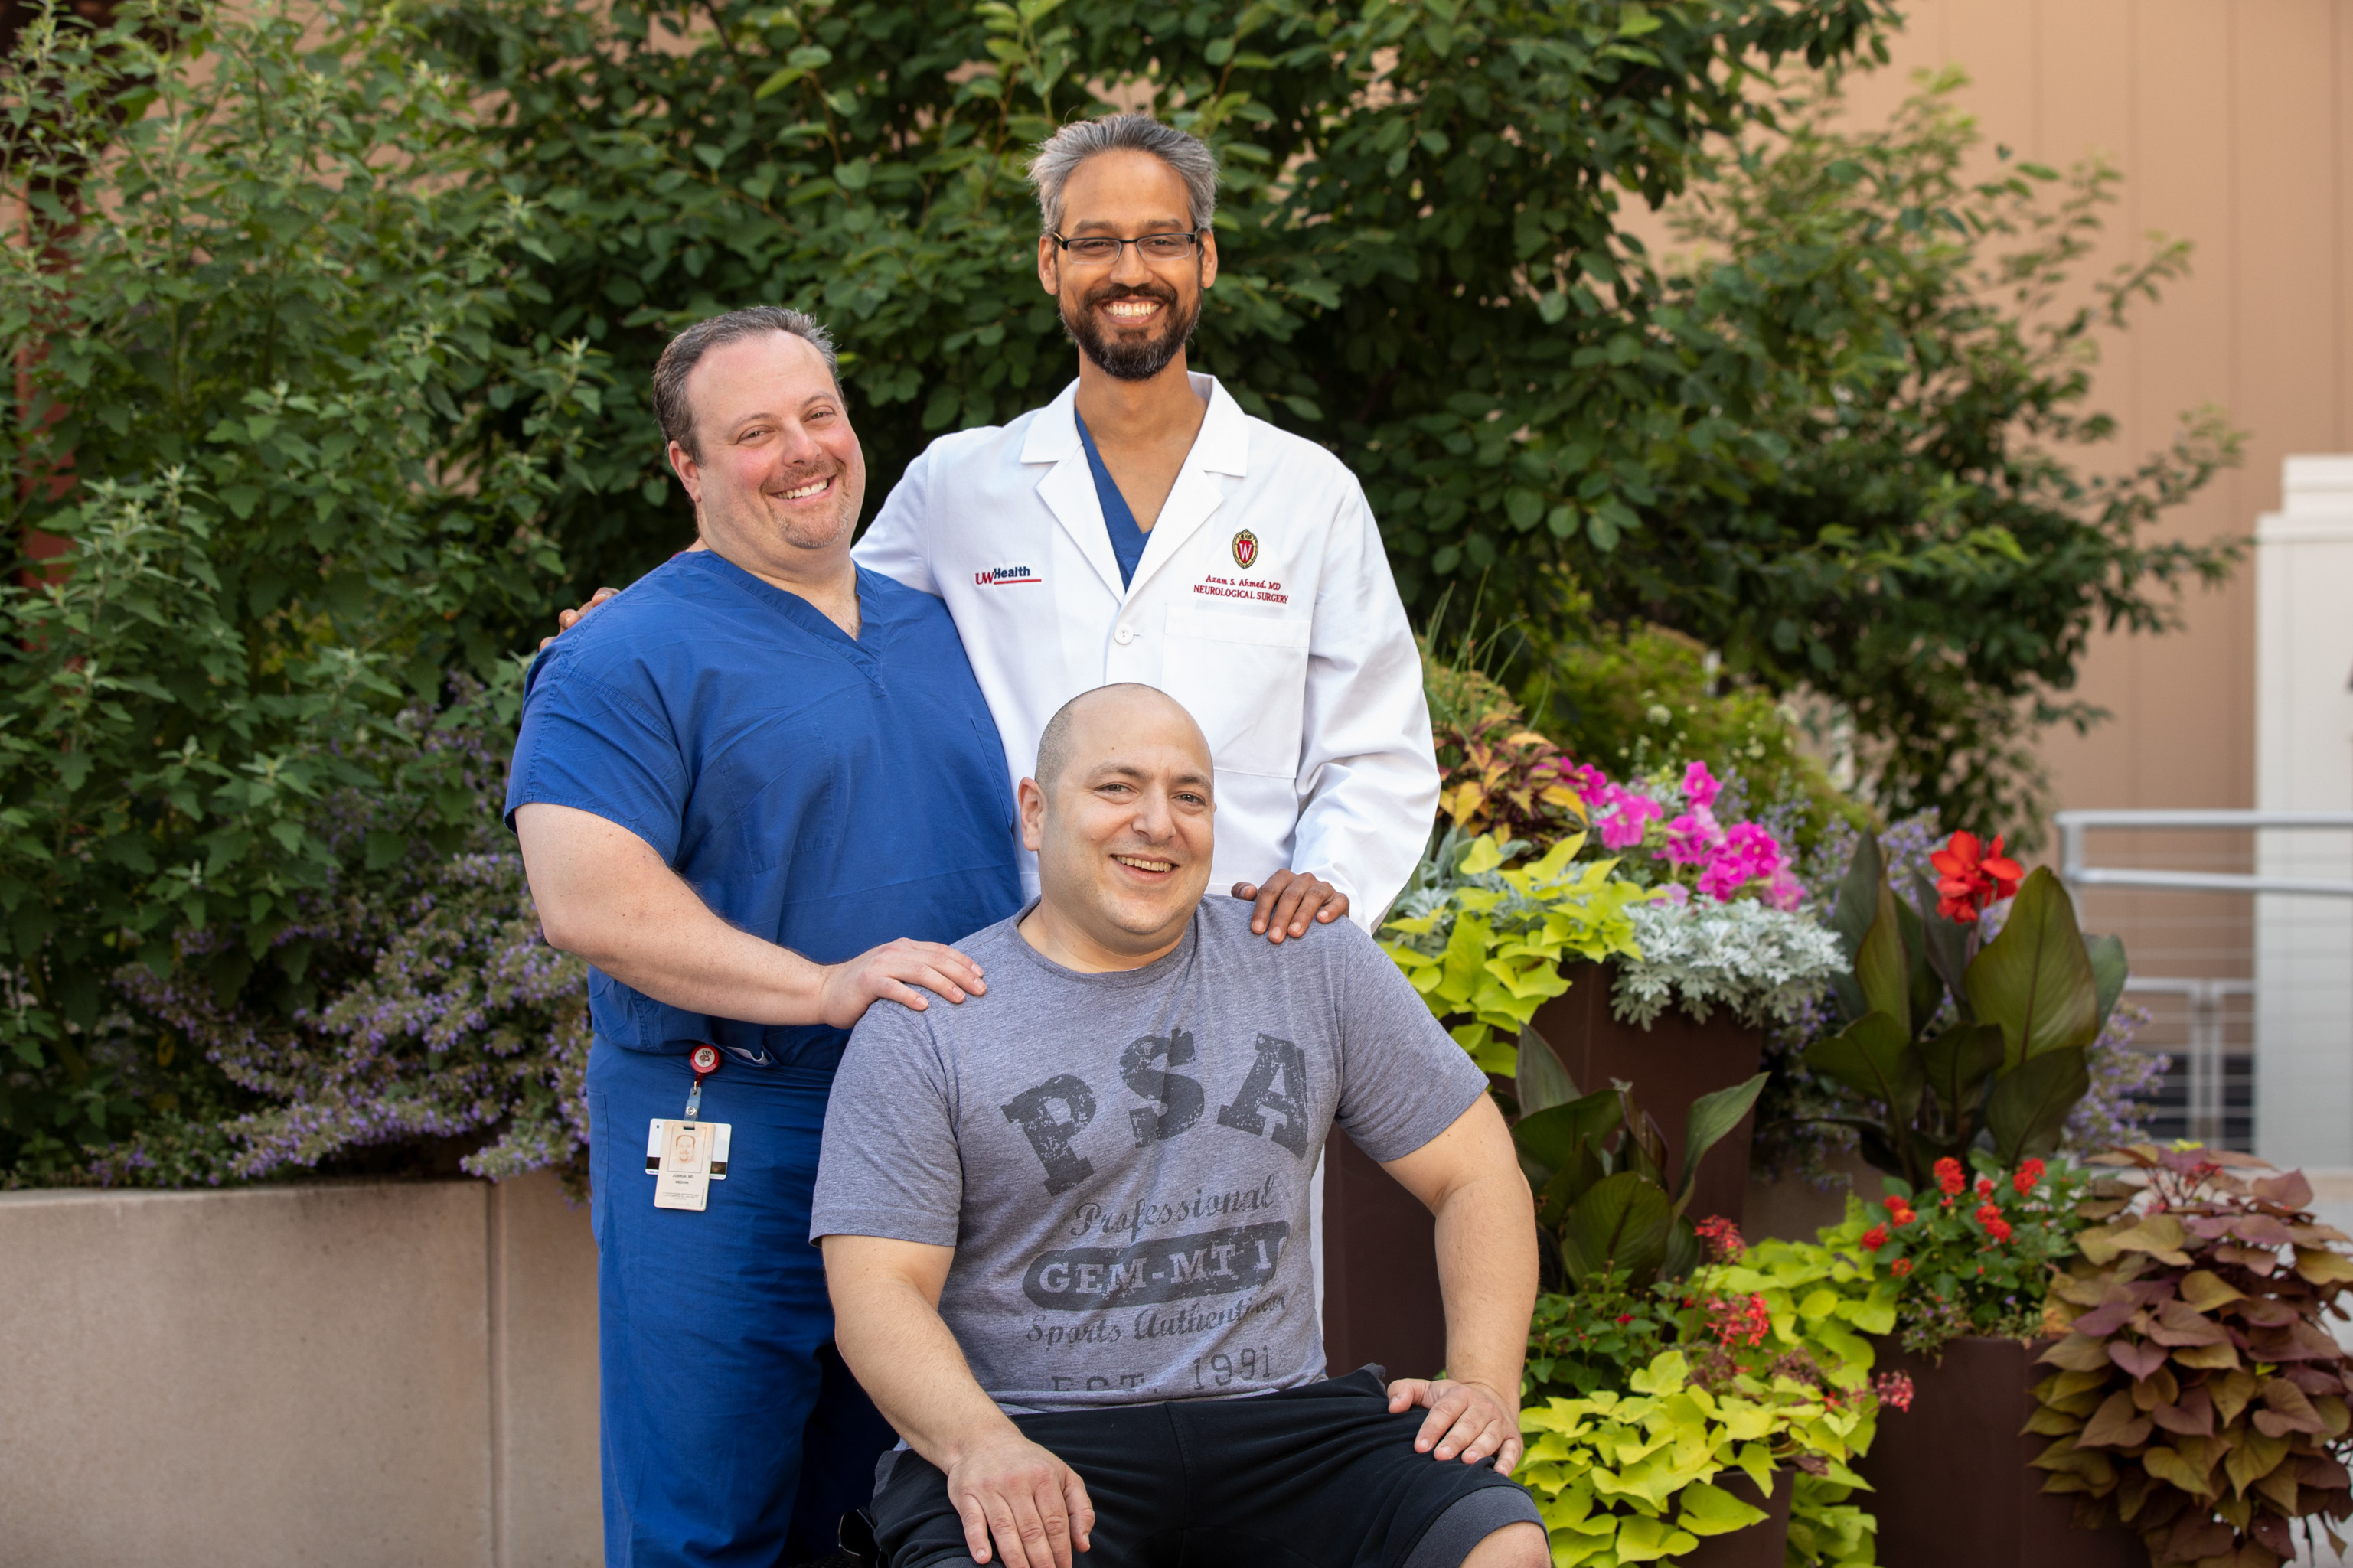 Jordan Dorf (seated) travelled from Denver to Madison to have his pituitary tumor removed